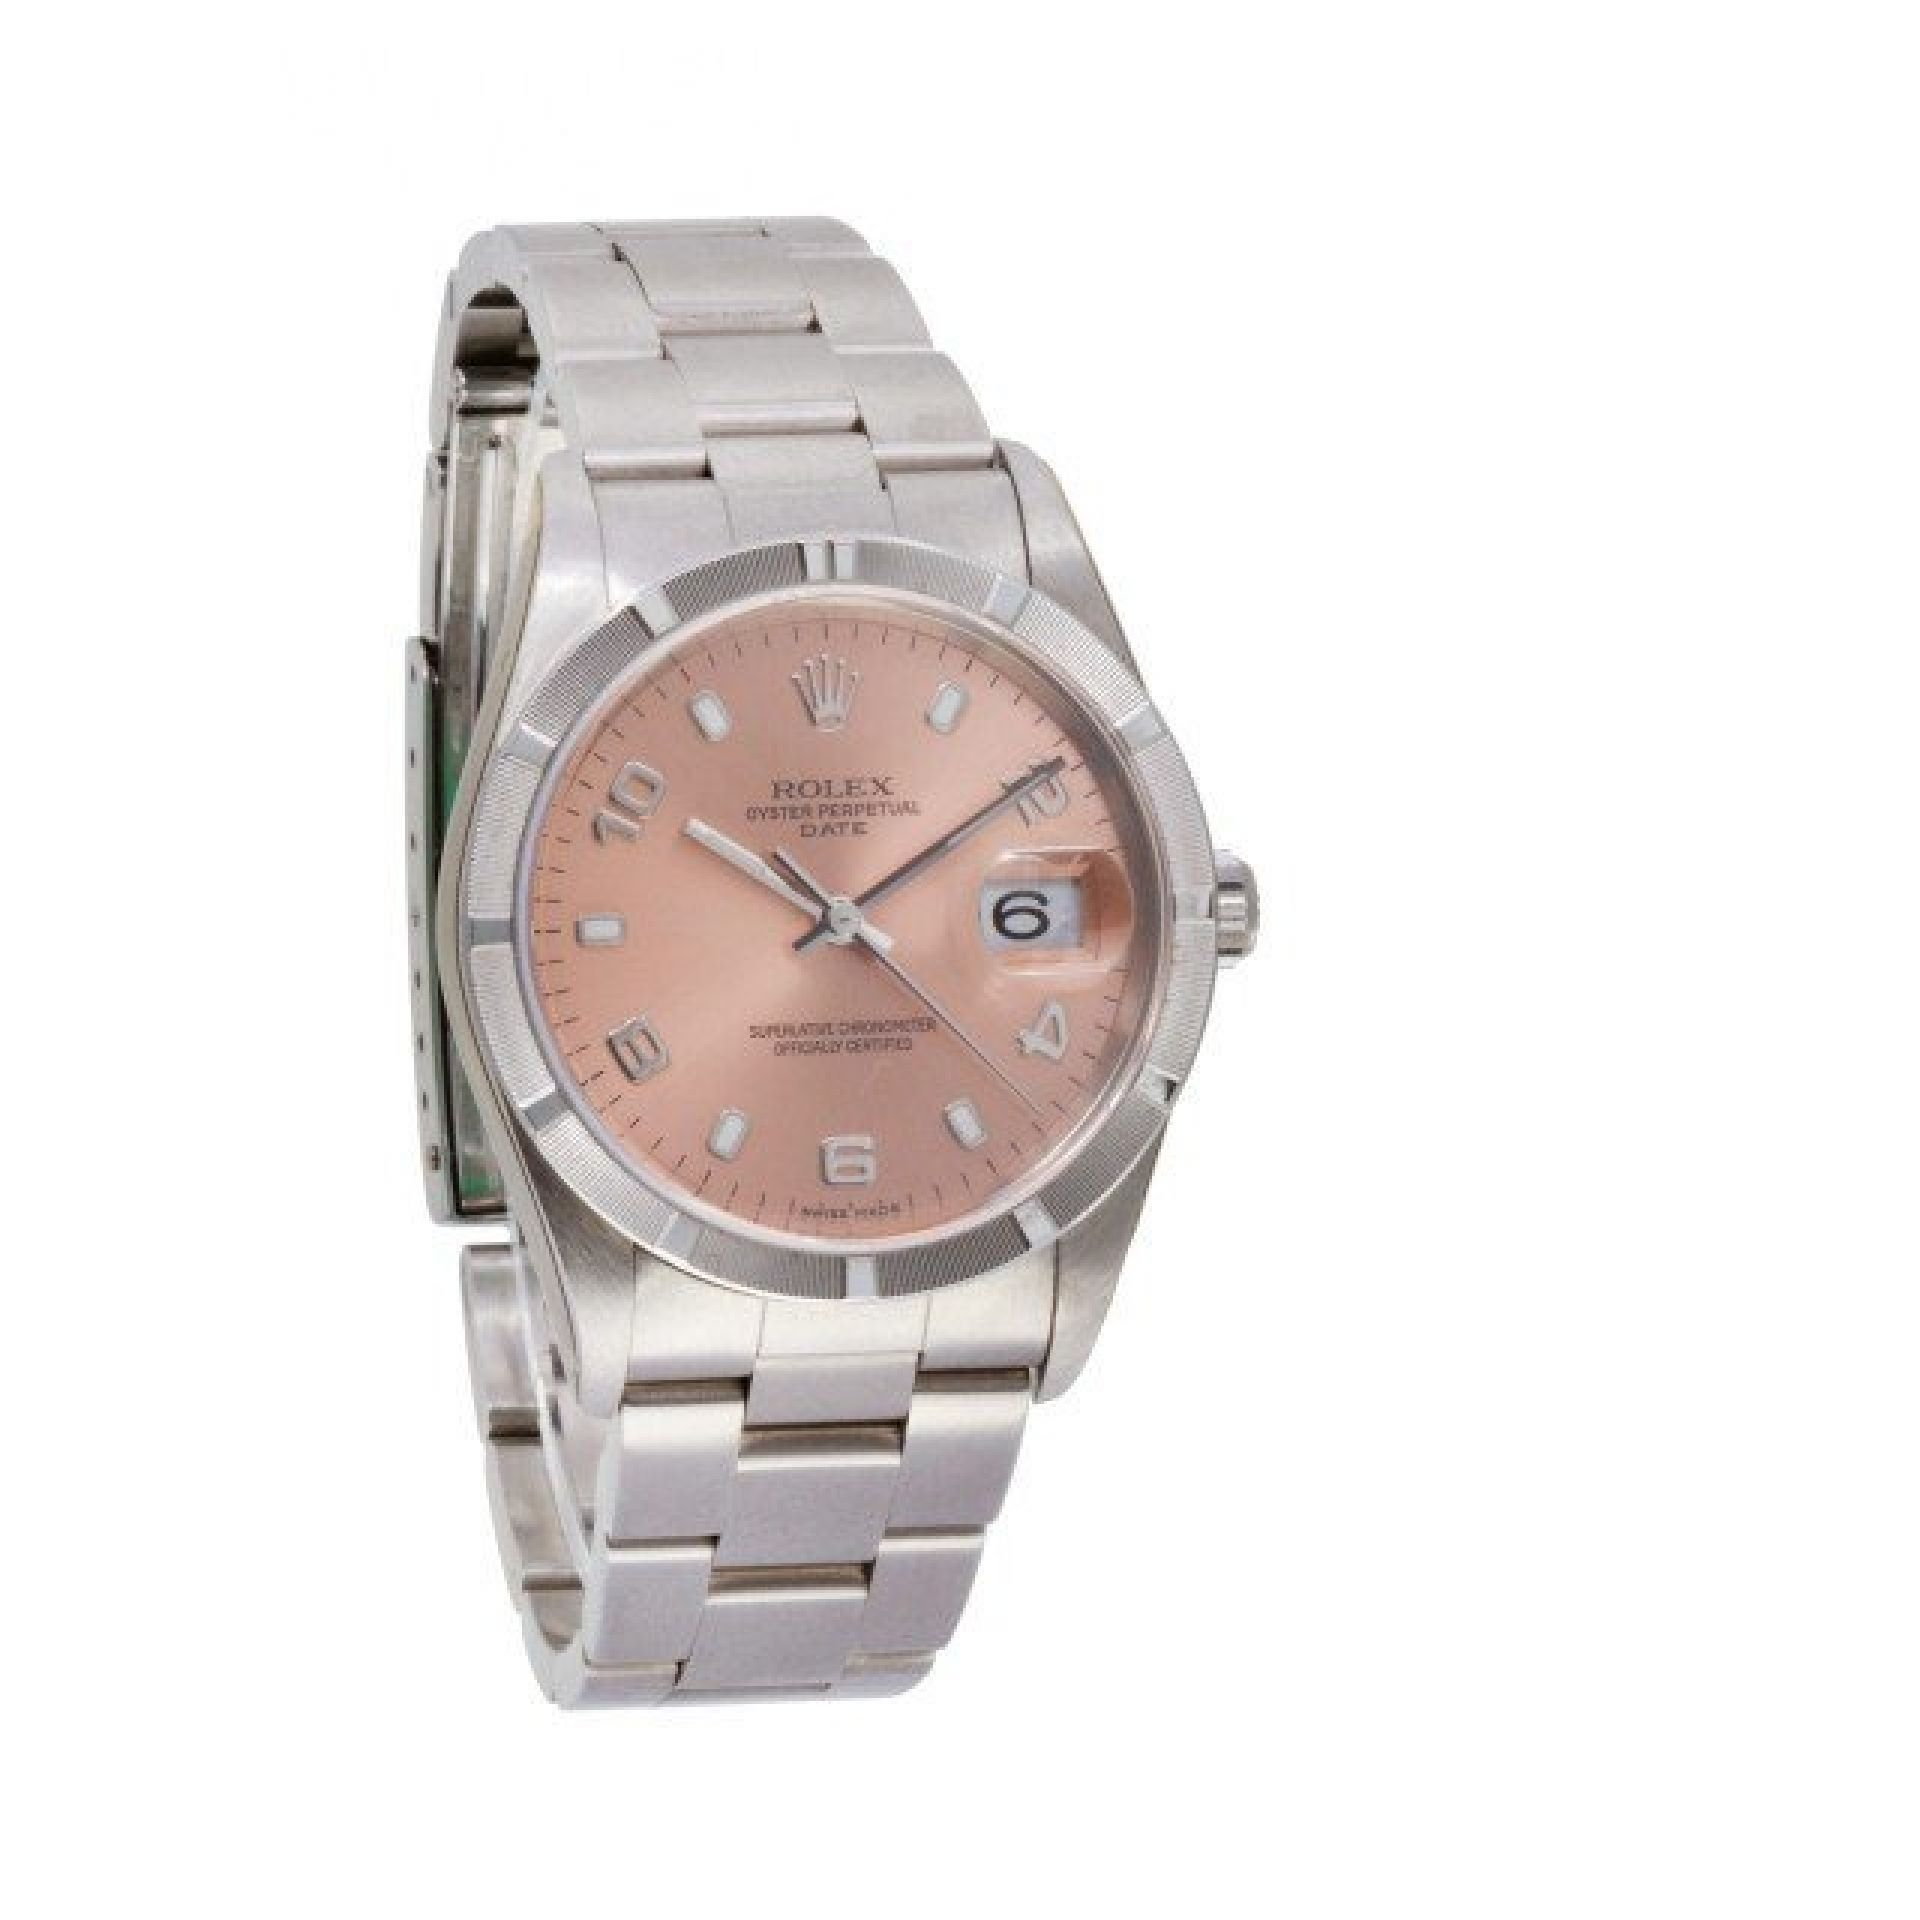 Rolex Date 15210 stainless steel Pink dial 34mm auto watch